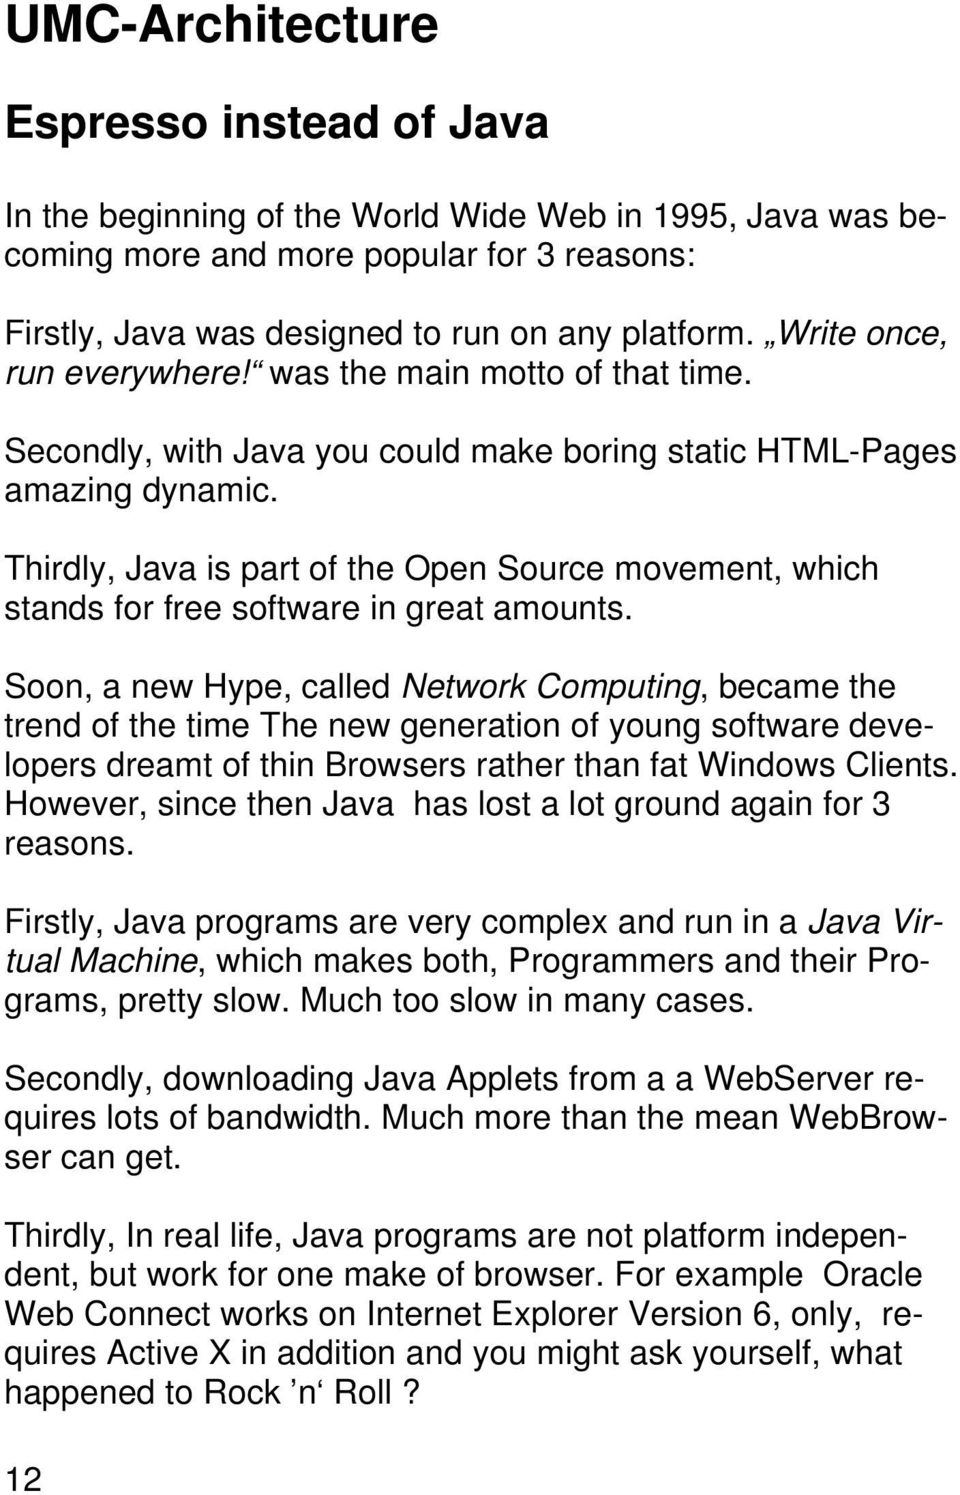 Thirdly, Java is part of the Open Source movement, which stands for free software in great amounts.